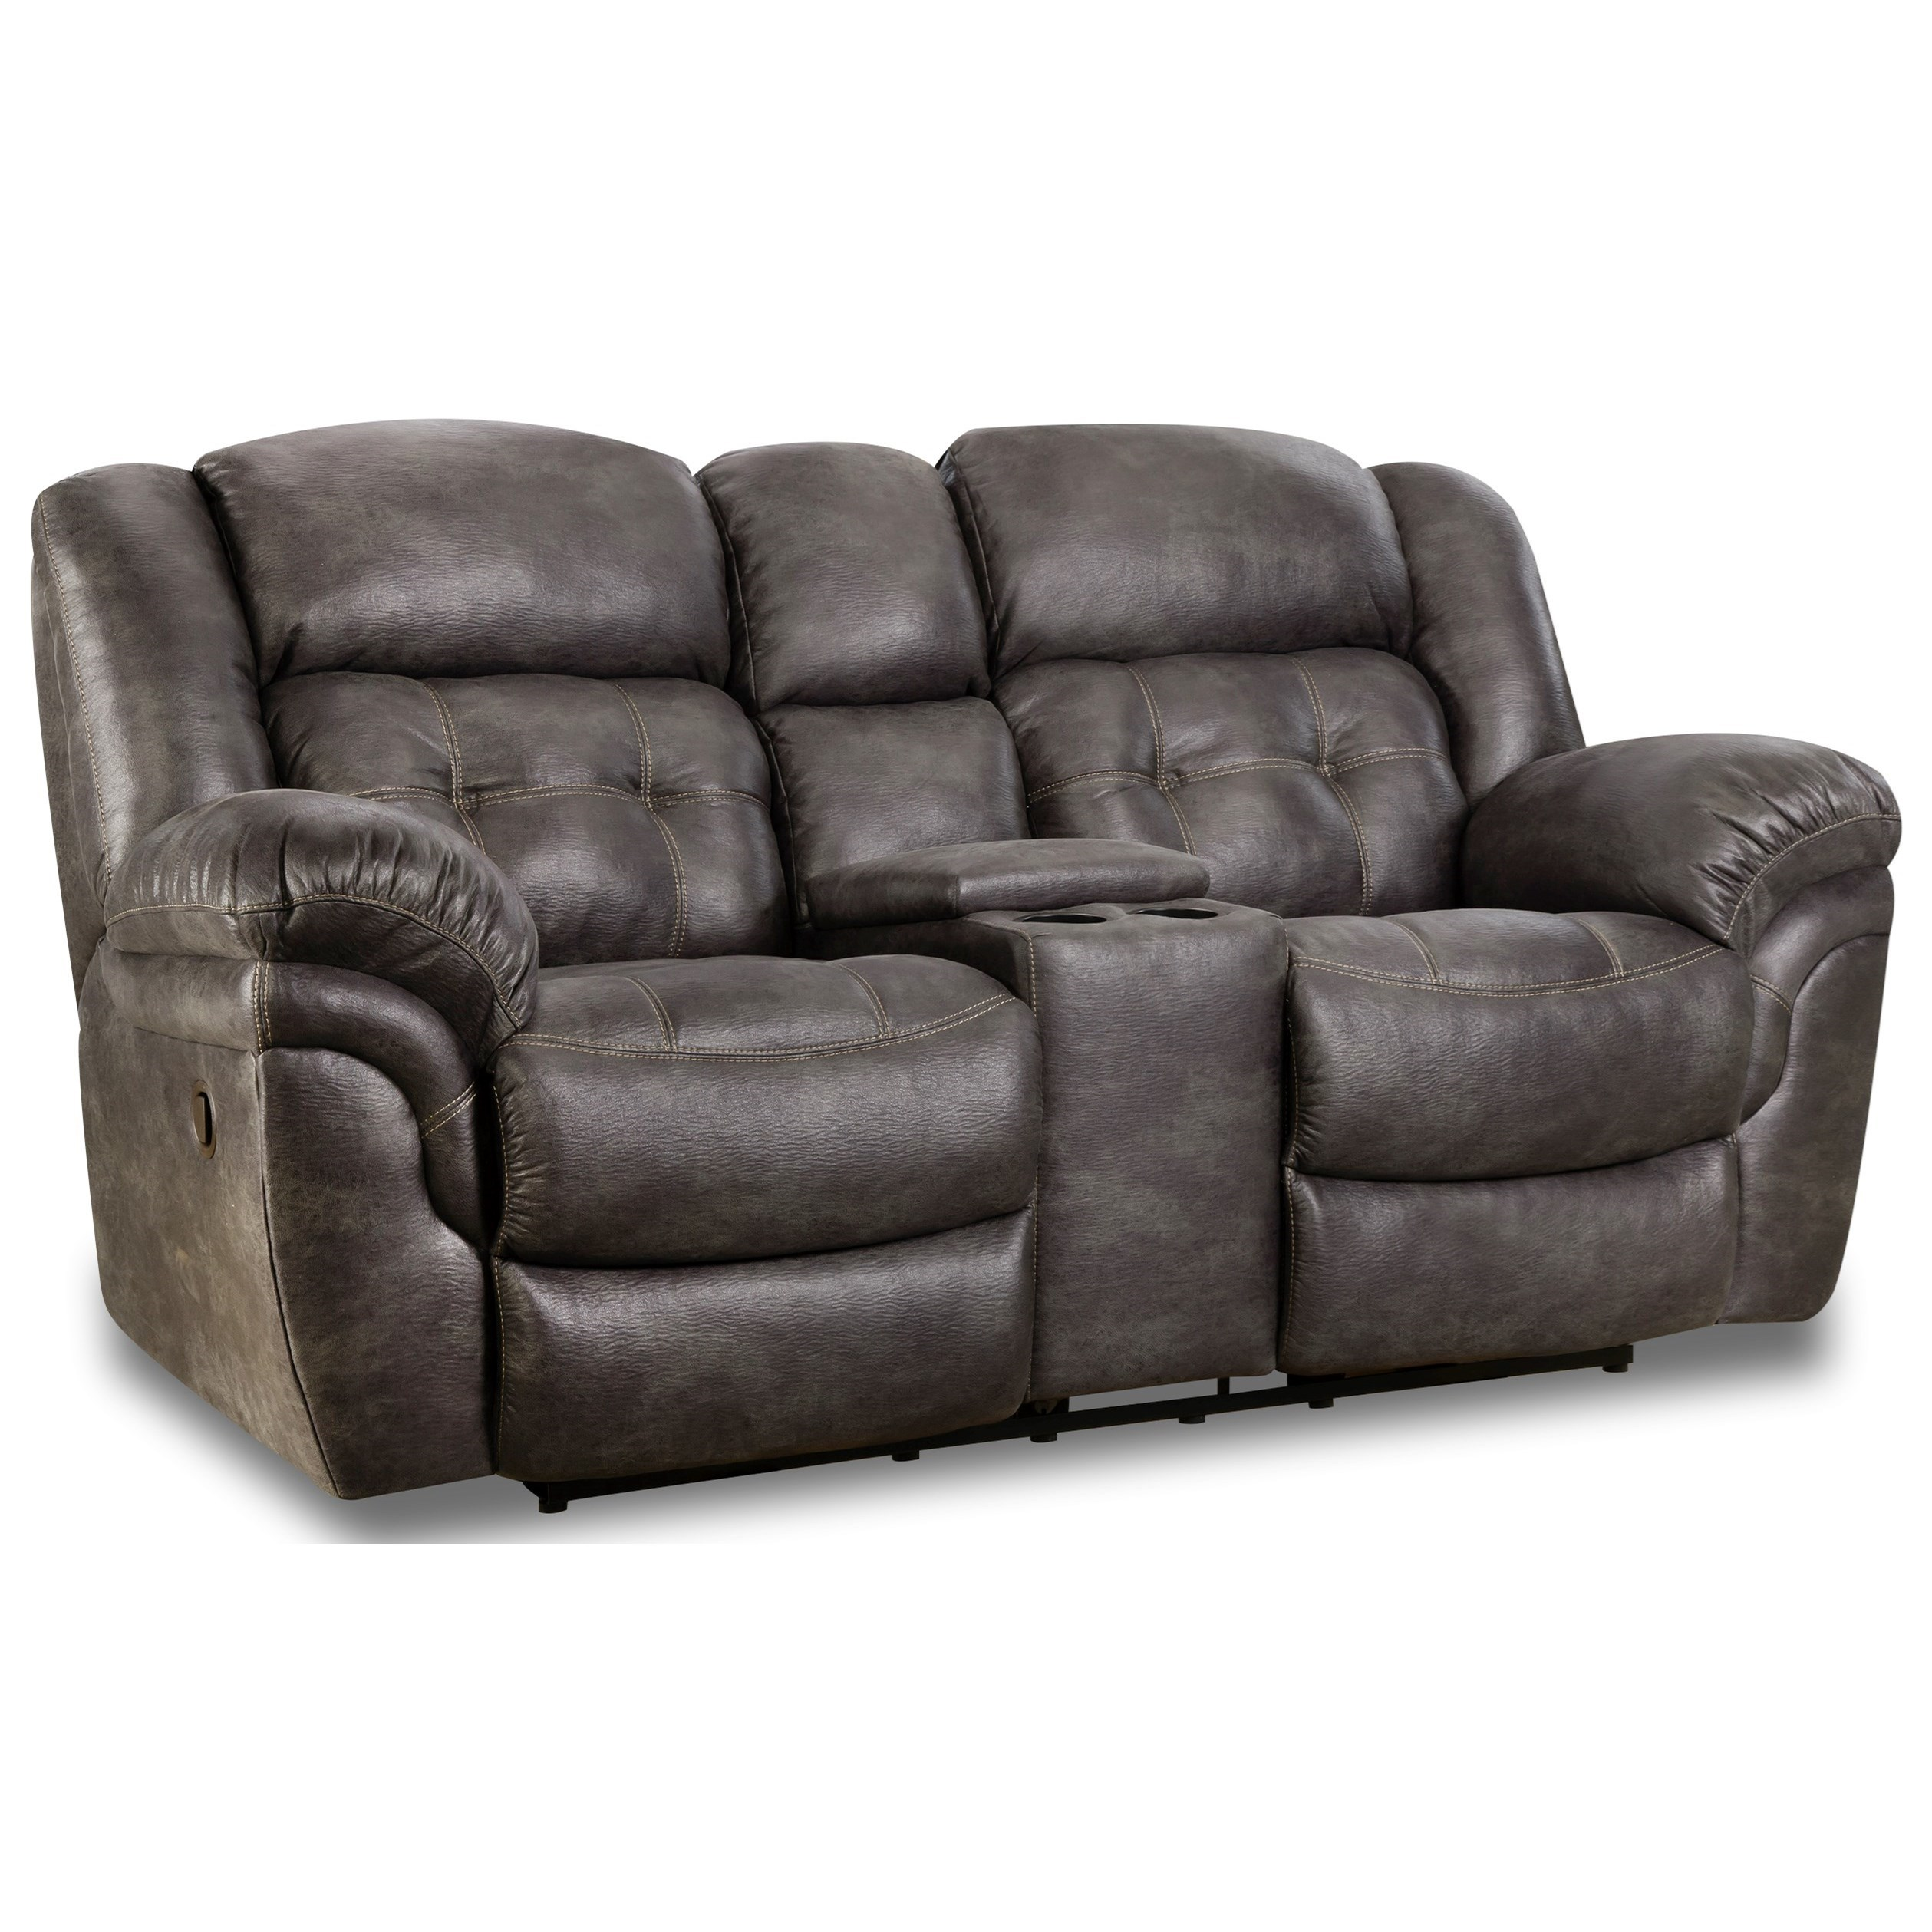 129 Reclining Console Loveseat by HomeStretch at Van Hill Furniture